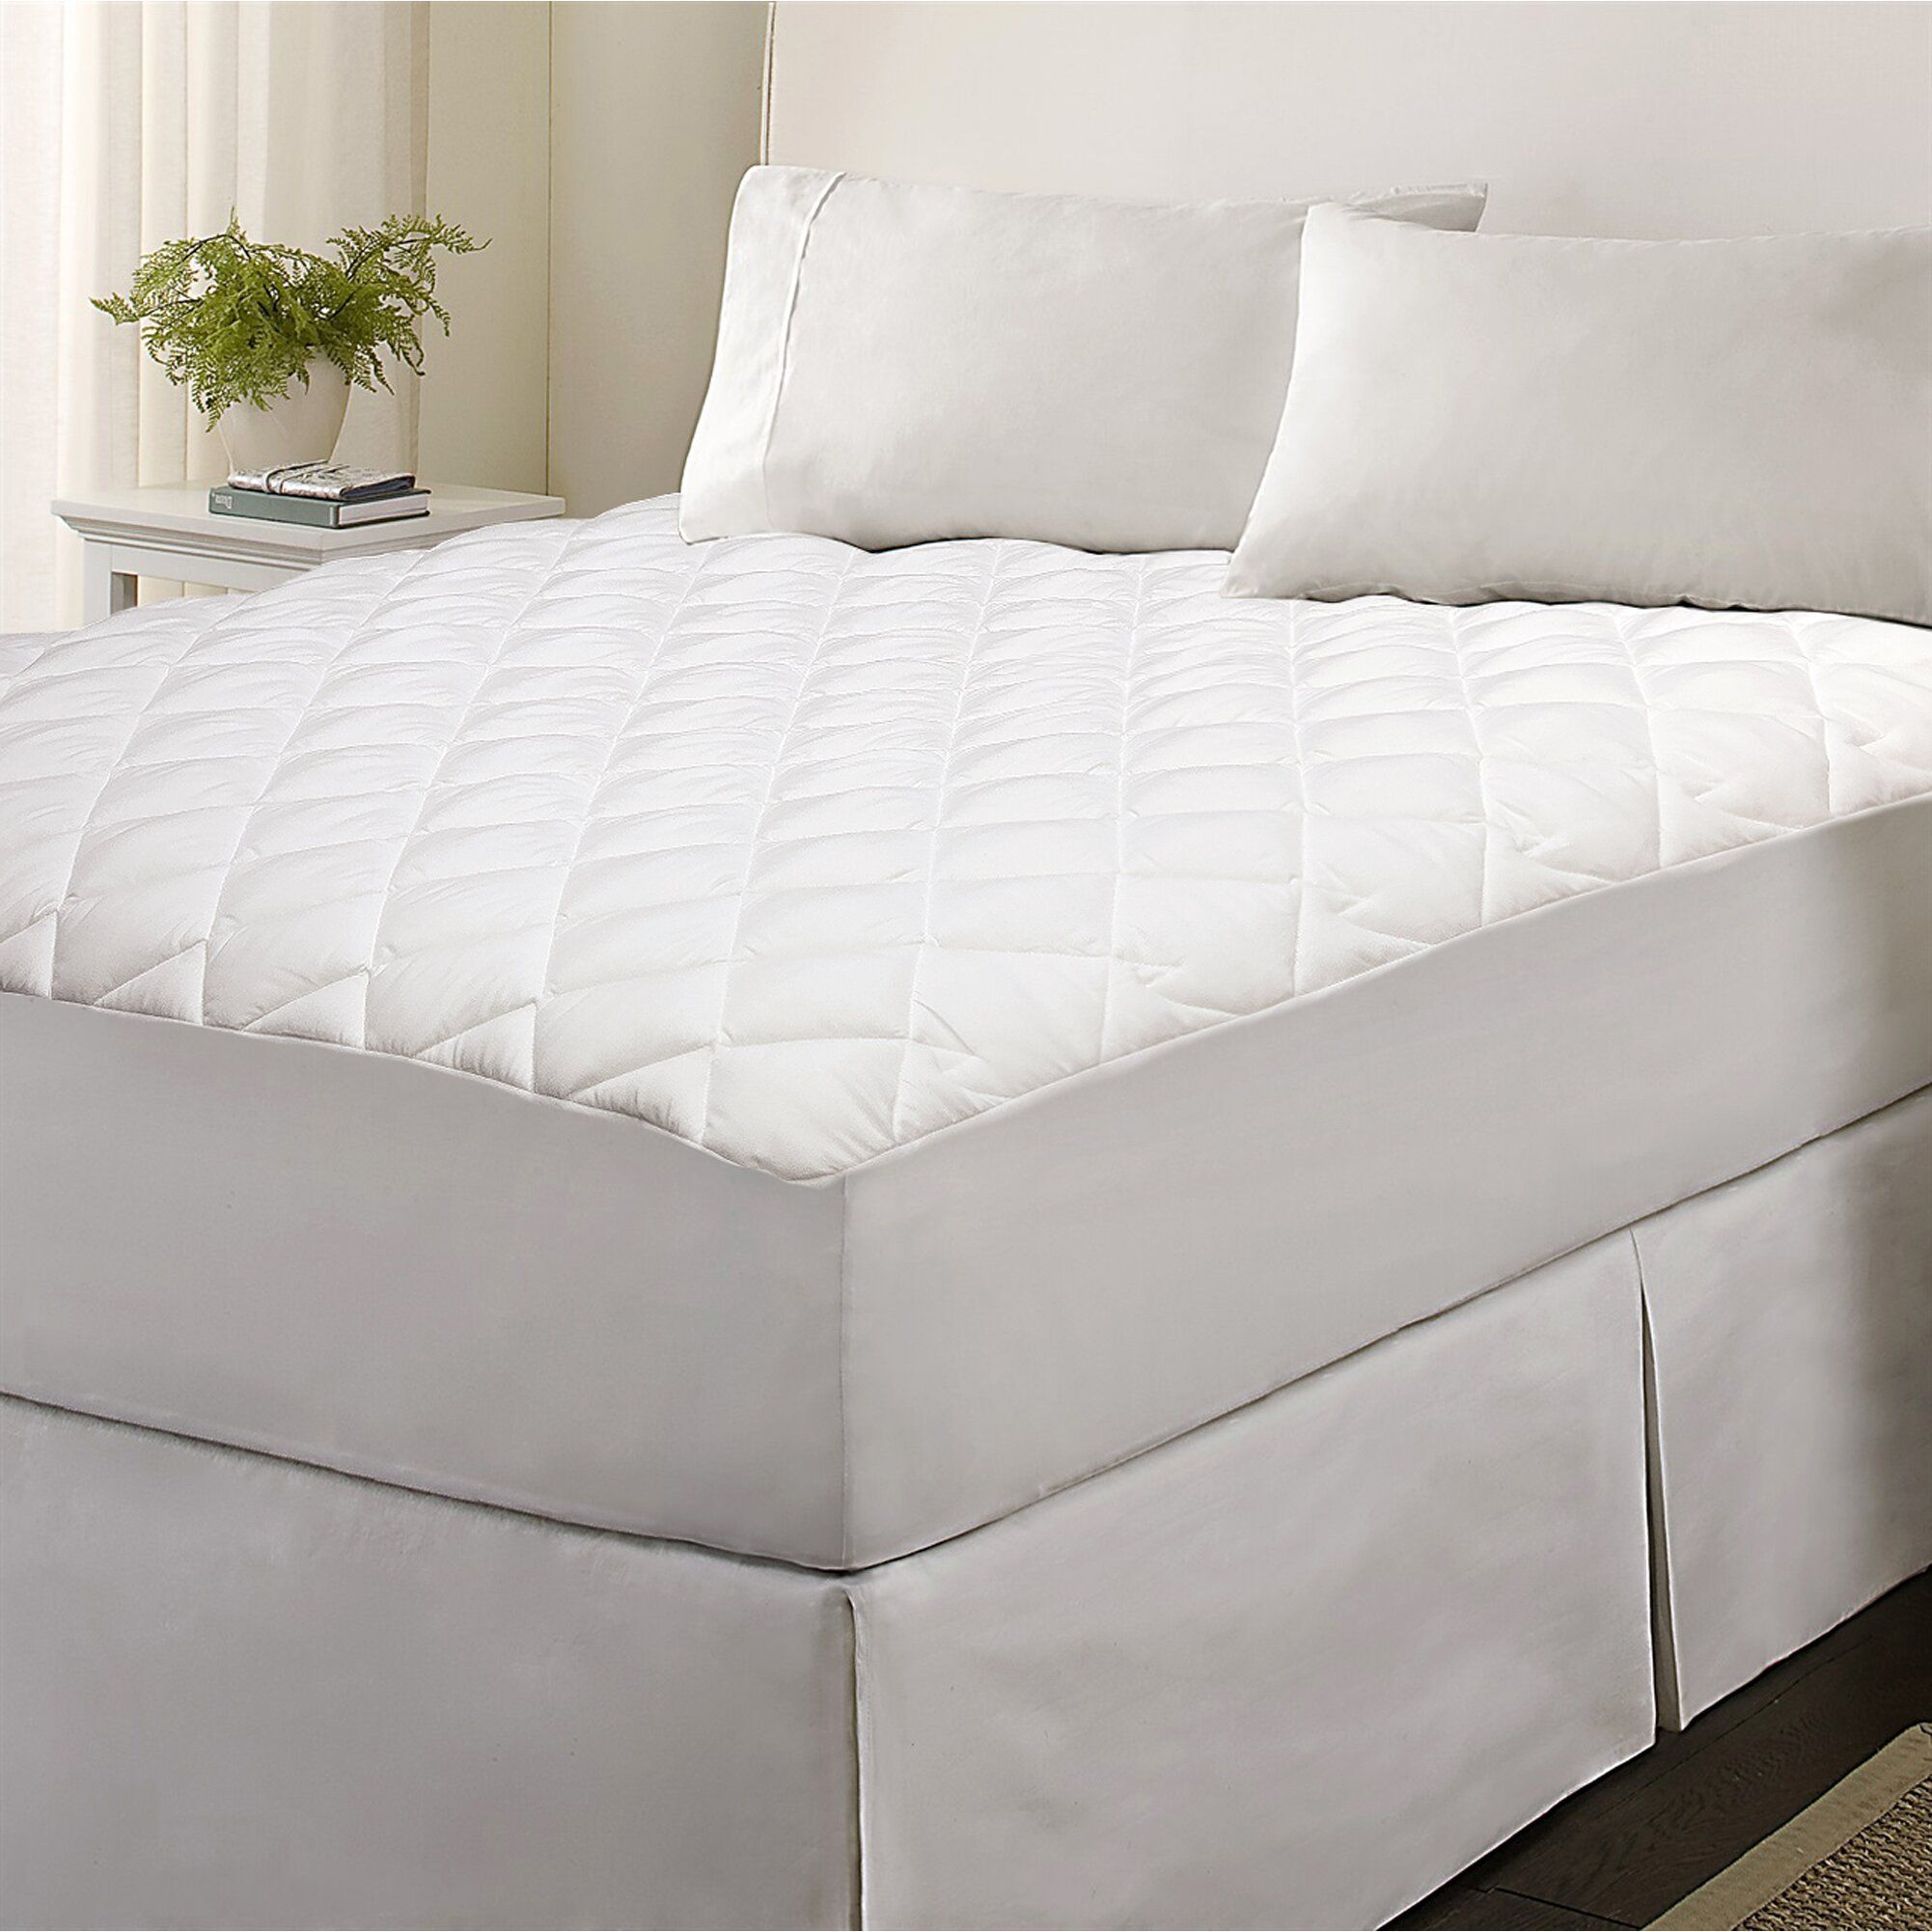 Quilted Mattress Pad Cover Cooling Fluffy Soft Topper upto